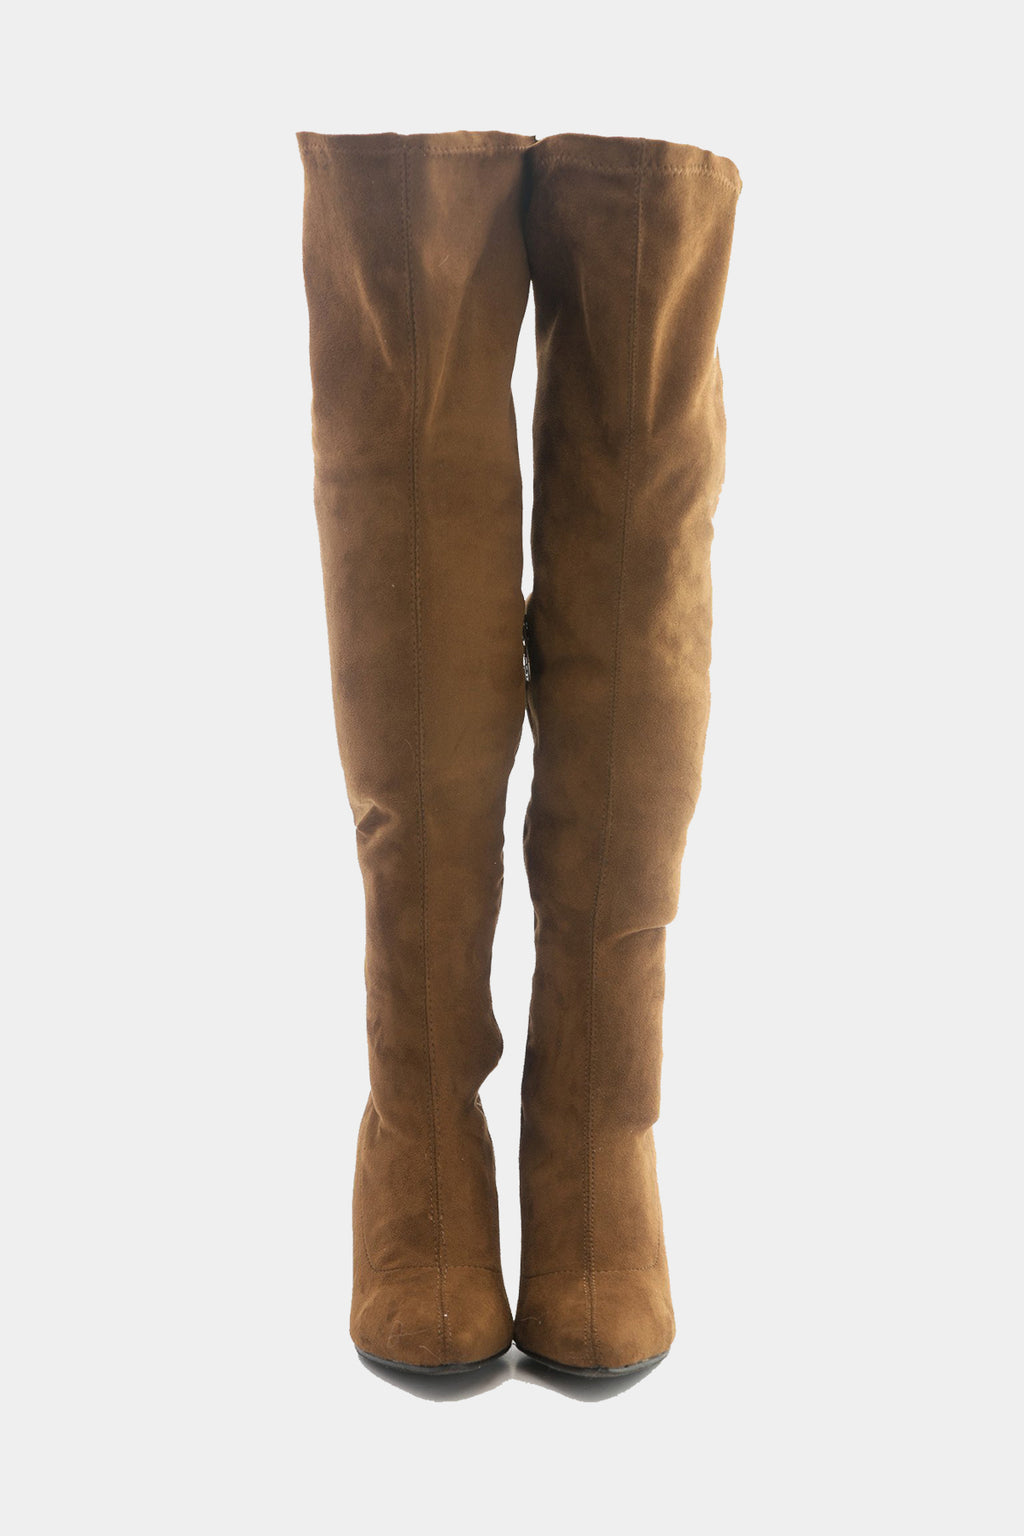 Cari Knee High Boots - Brown